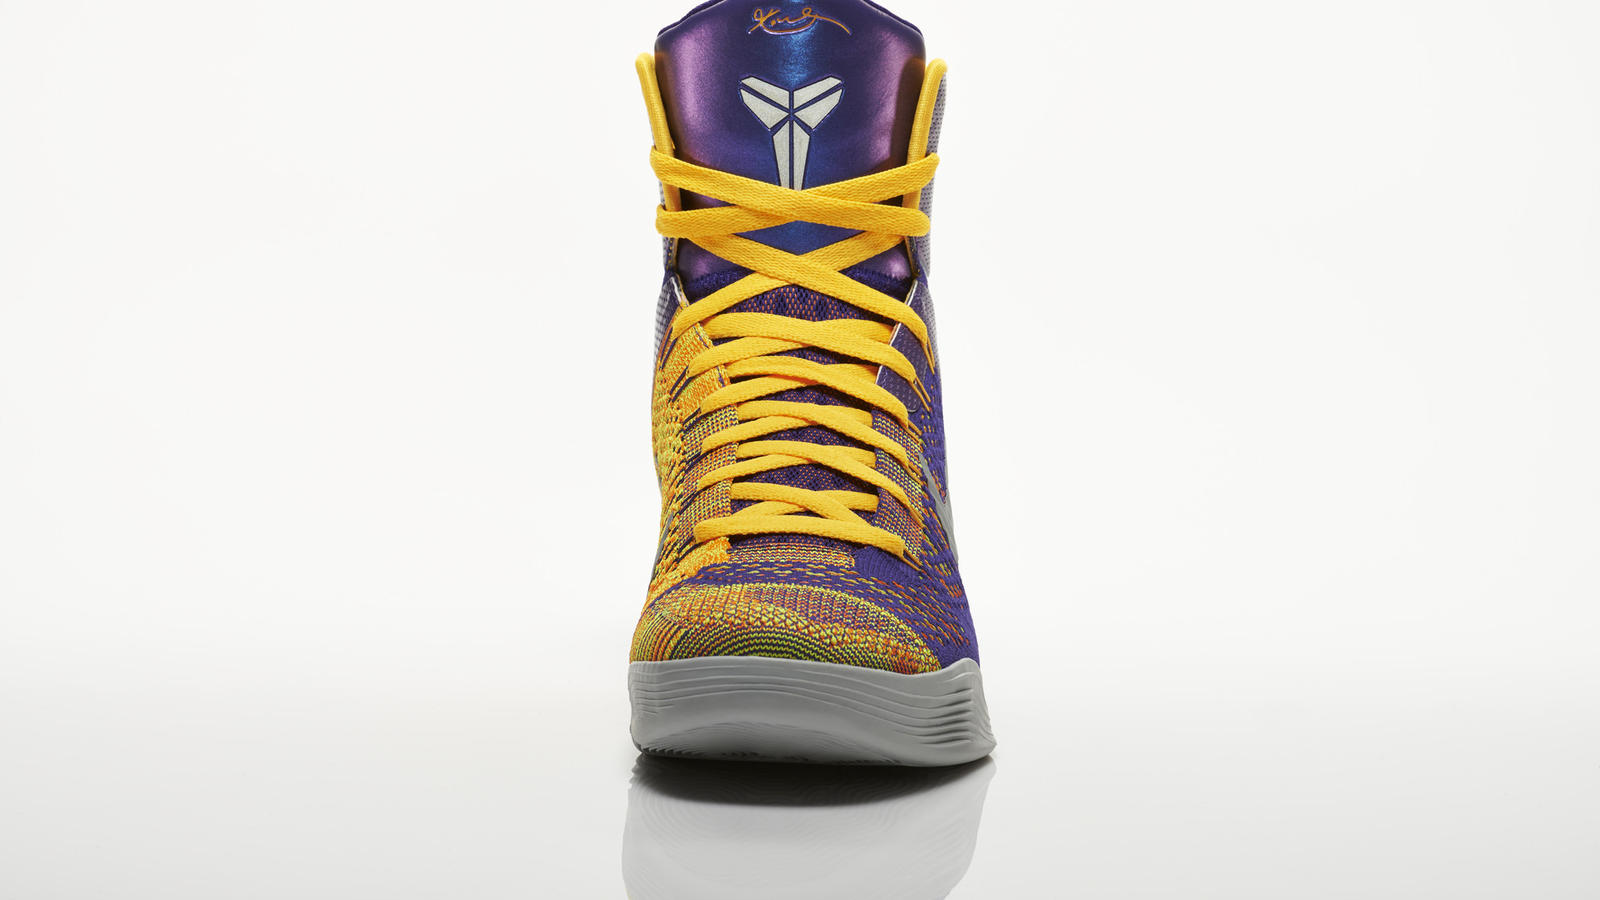 su14_bb_kobe9_elite_630847_500_return_front_0044